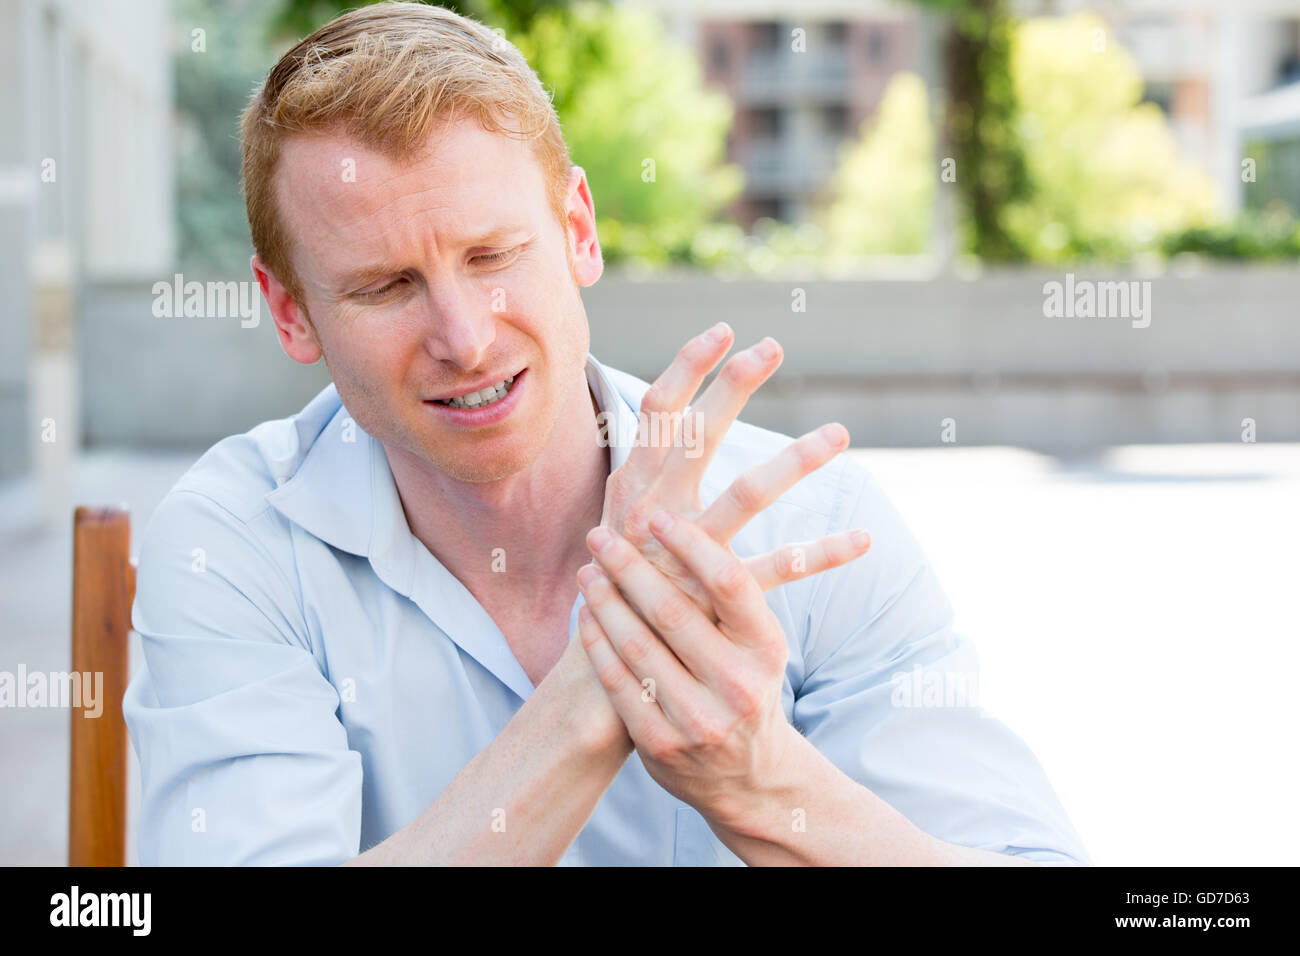 Closeup portrait, young man having acute bad joint pain in his hands, writer's cramp, massaging them, sitting - Stock Image